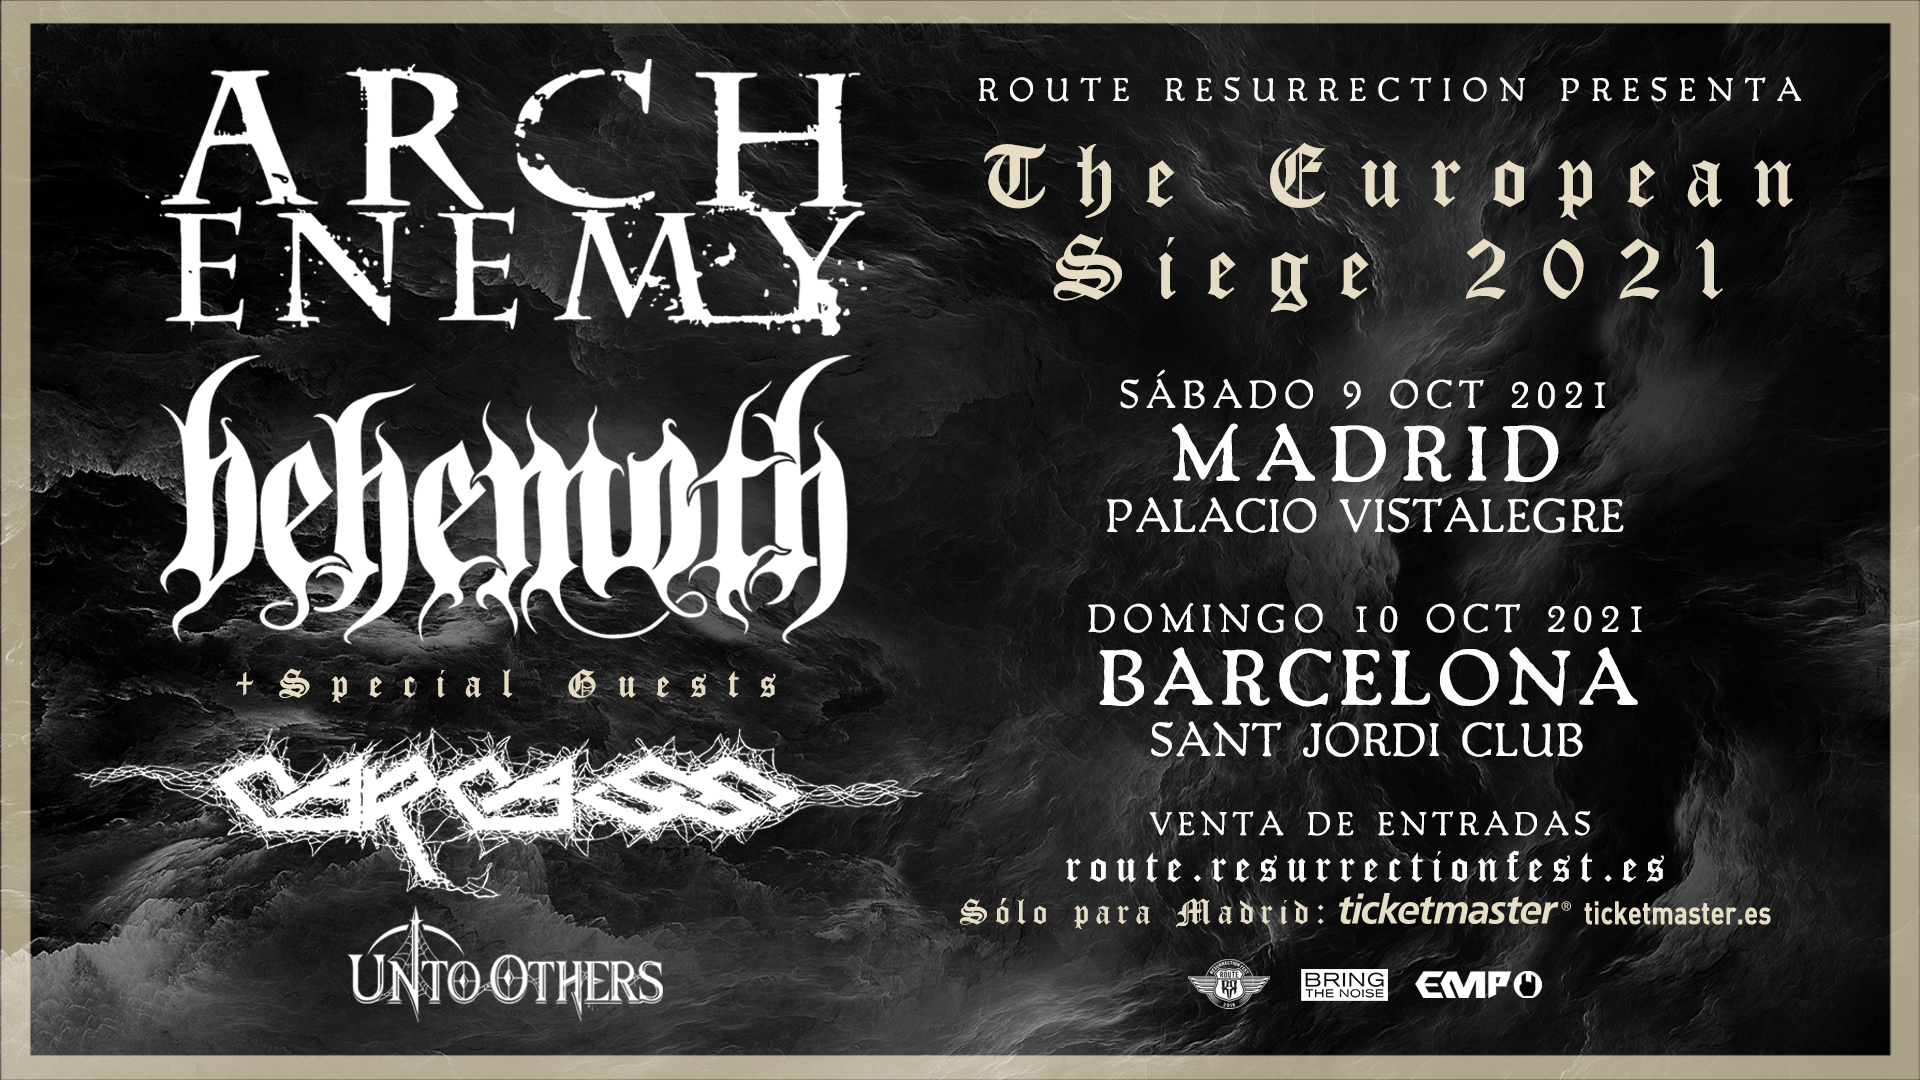 Route Resurrection Fest 2021 - ARCH ENEMY y BEHEMOTH con CARCASS - Event